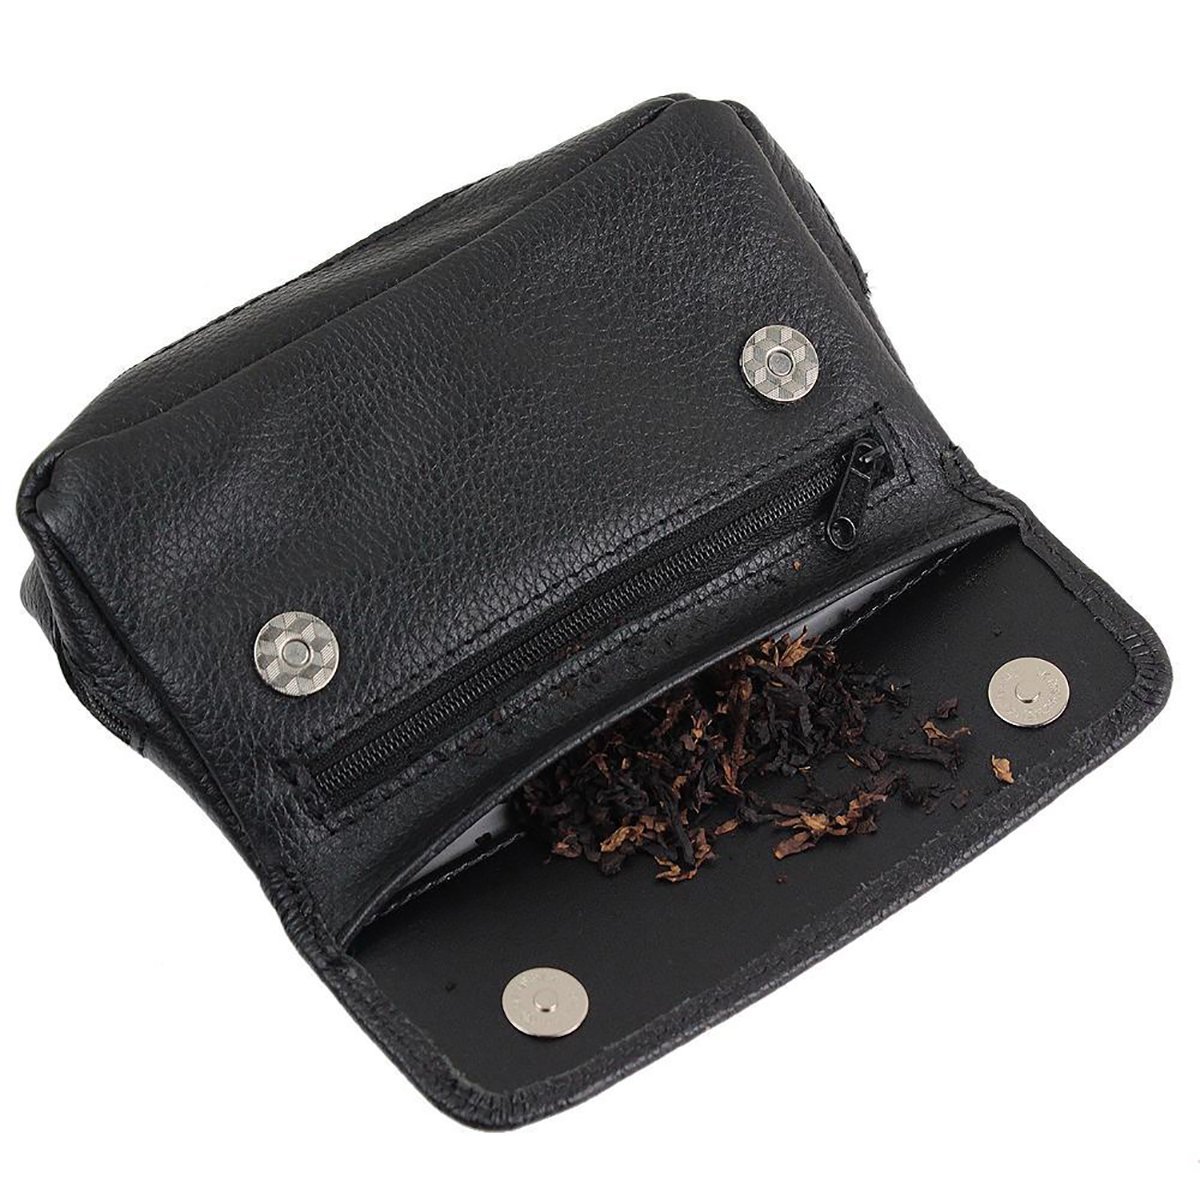 Leather Cigarette Smoking Pipe Tobacco Pouch Case Bag for 2 pipes Holder Soft Genuine Leather pocket-Gift for Smokers (Style 1)